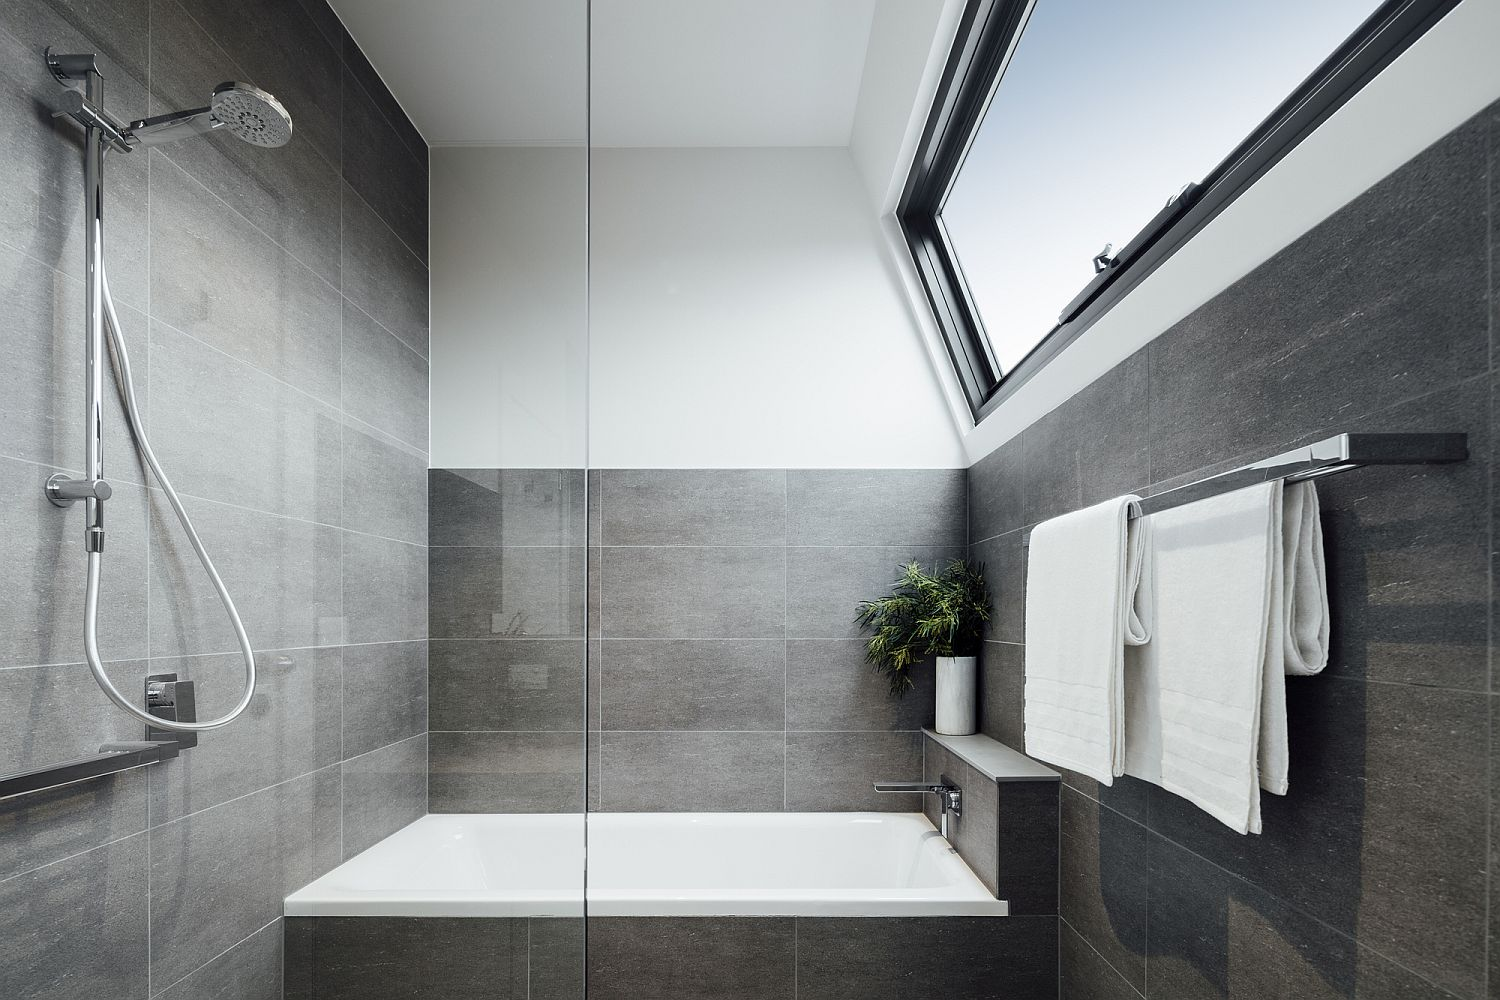 Contemporary bathroom in gray with ample natural light